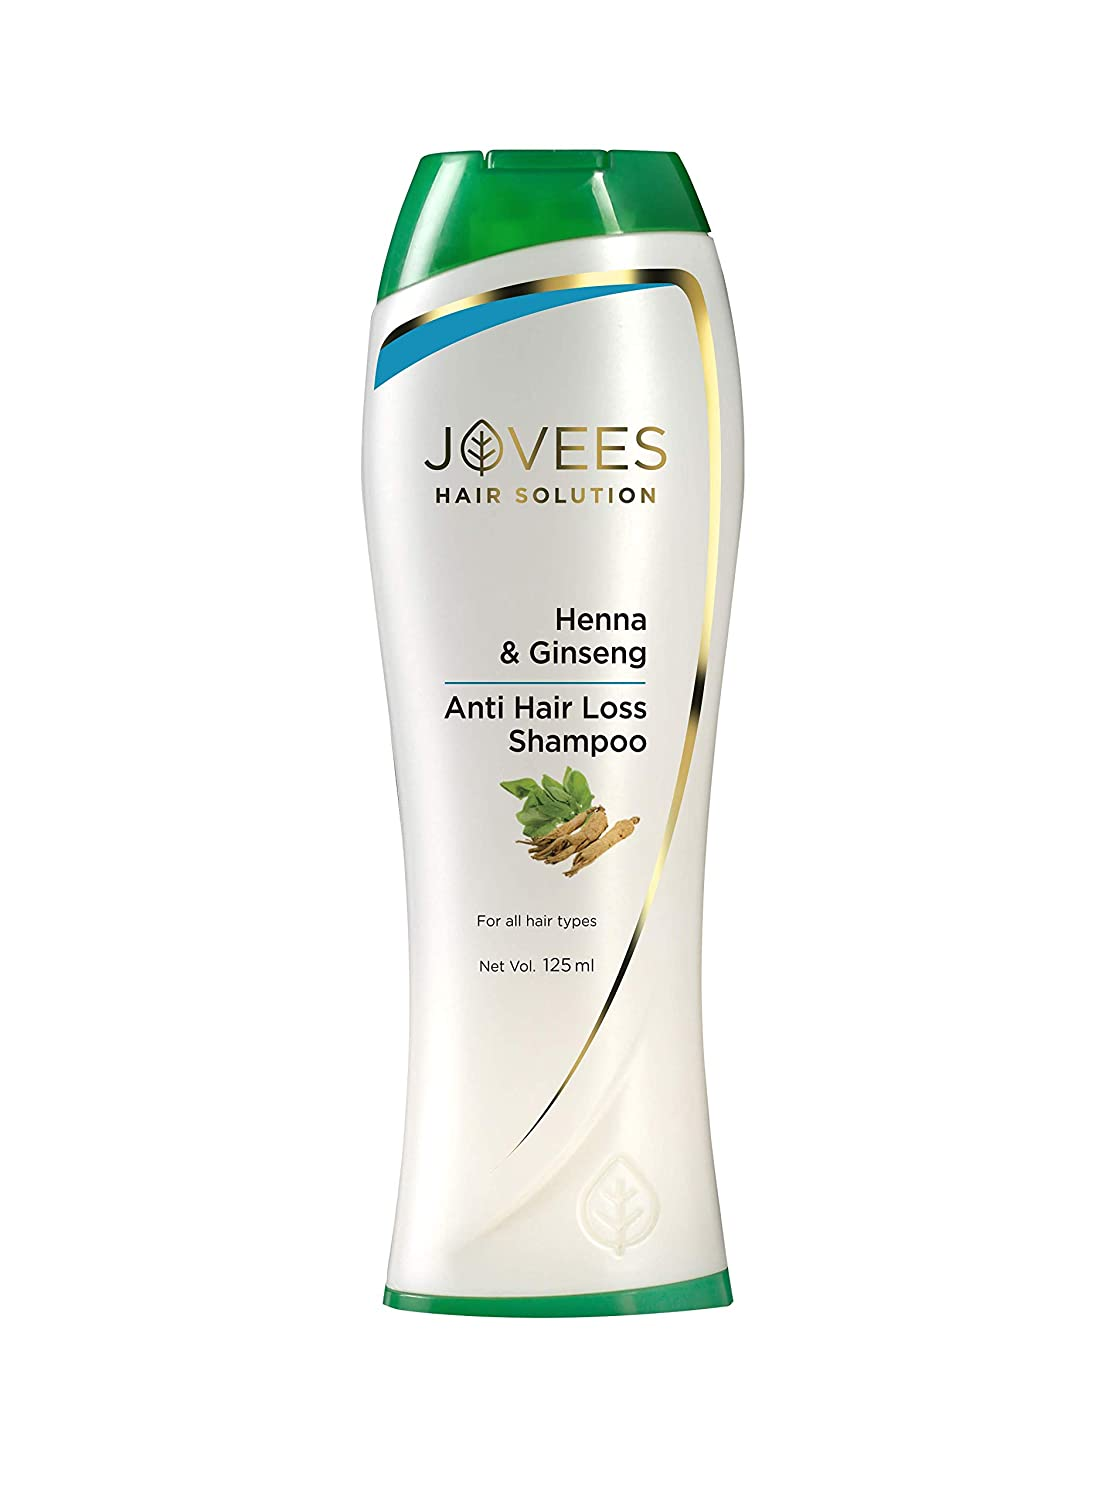 Jovees Henna & Ginseng Anti Hair Loss Shampoo